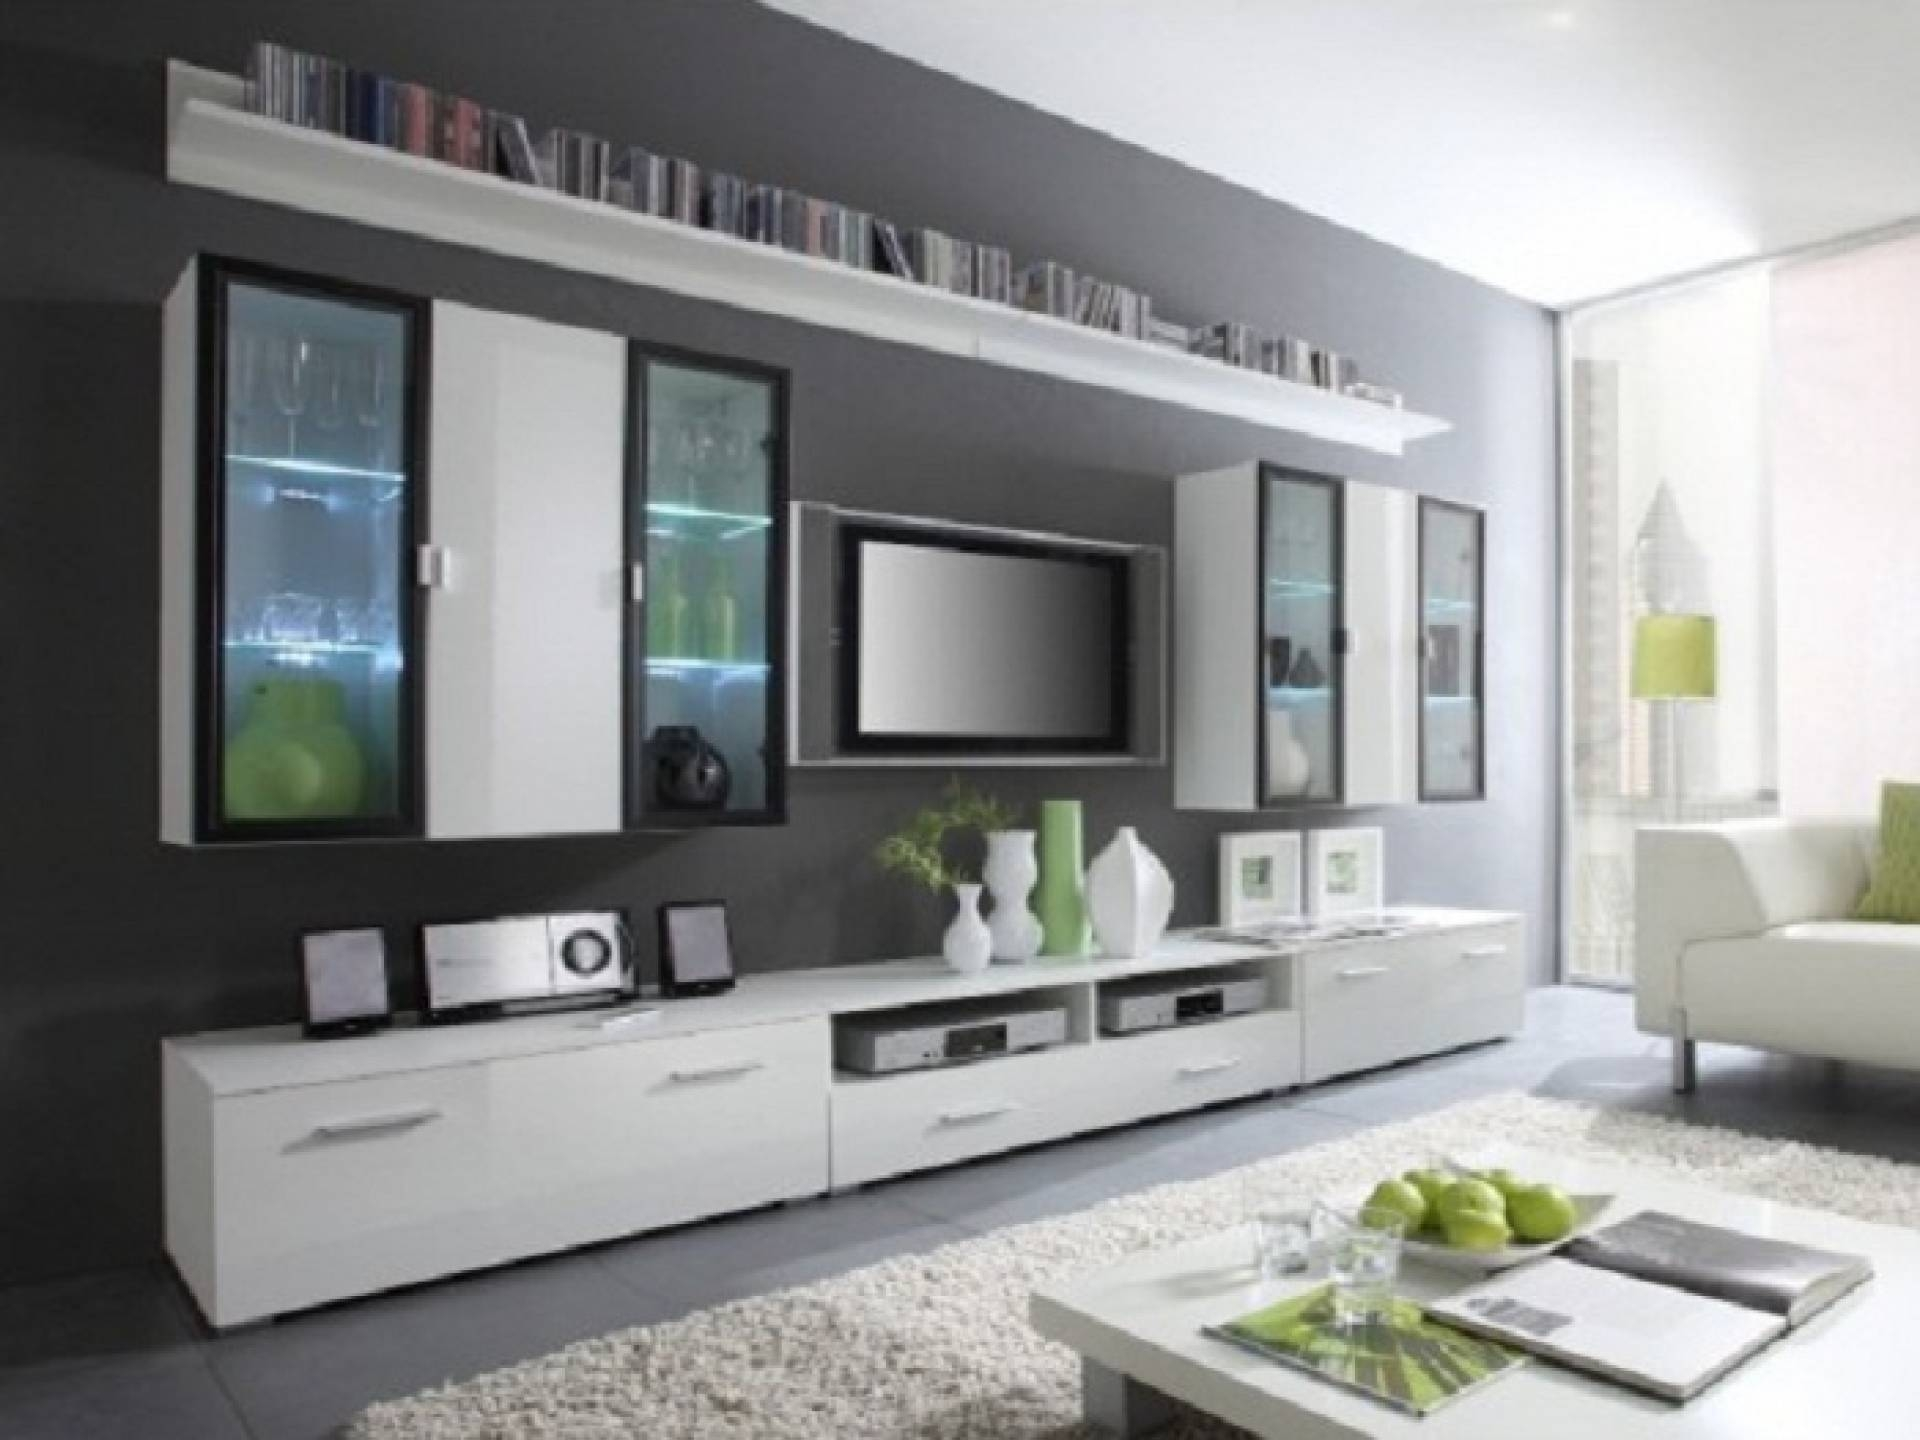 Wall Units. Amusing Tv Console Wall Units: Breathtaking-Tv-Console throughout Tv Cabinets and Wall Units (Image 9 of 15)